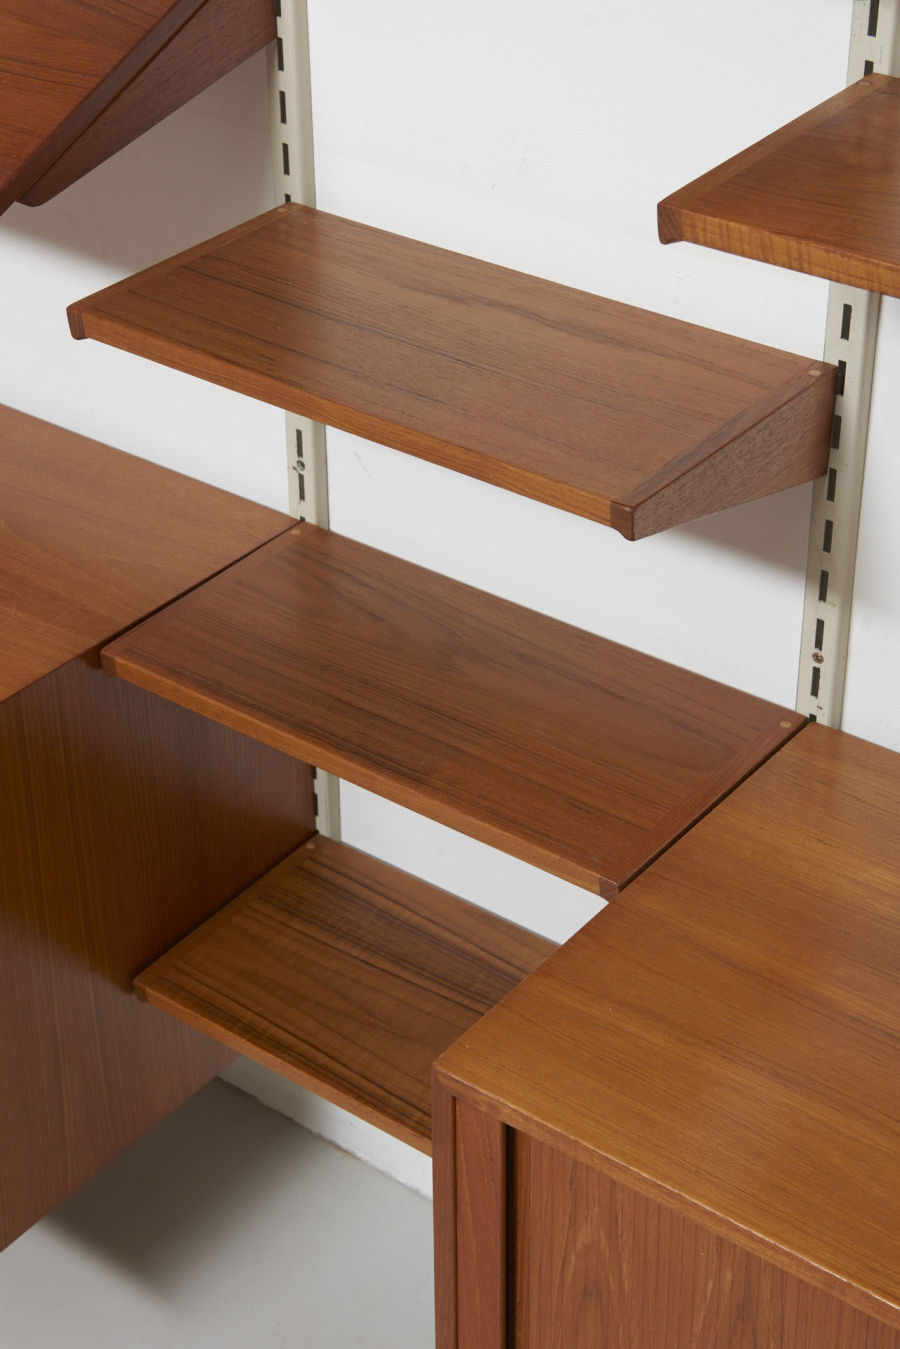 modestfurniture-vintage-2350-wall-unit-set3-kai-kristiansen-fm-teak05